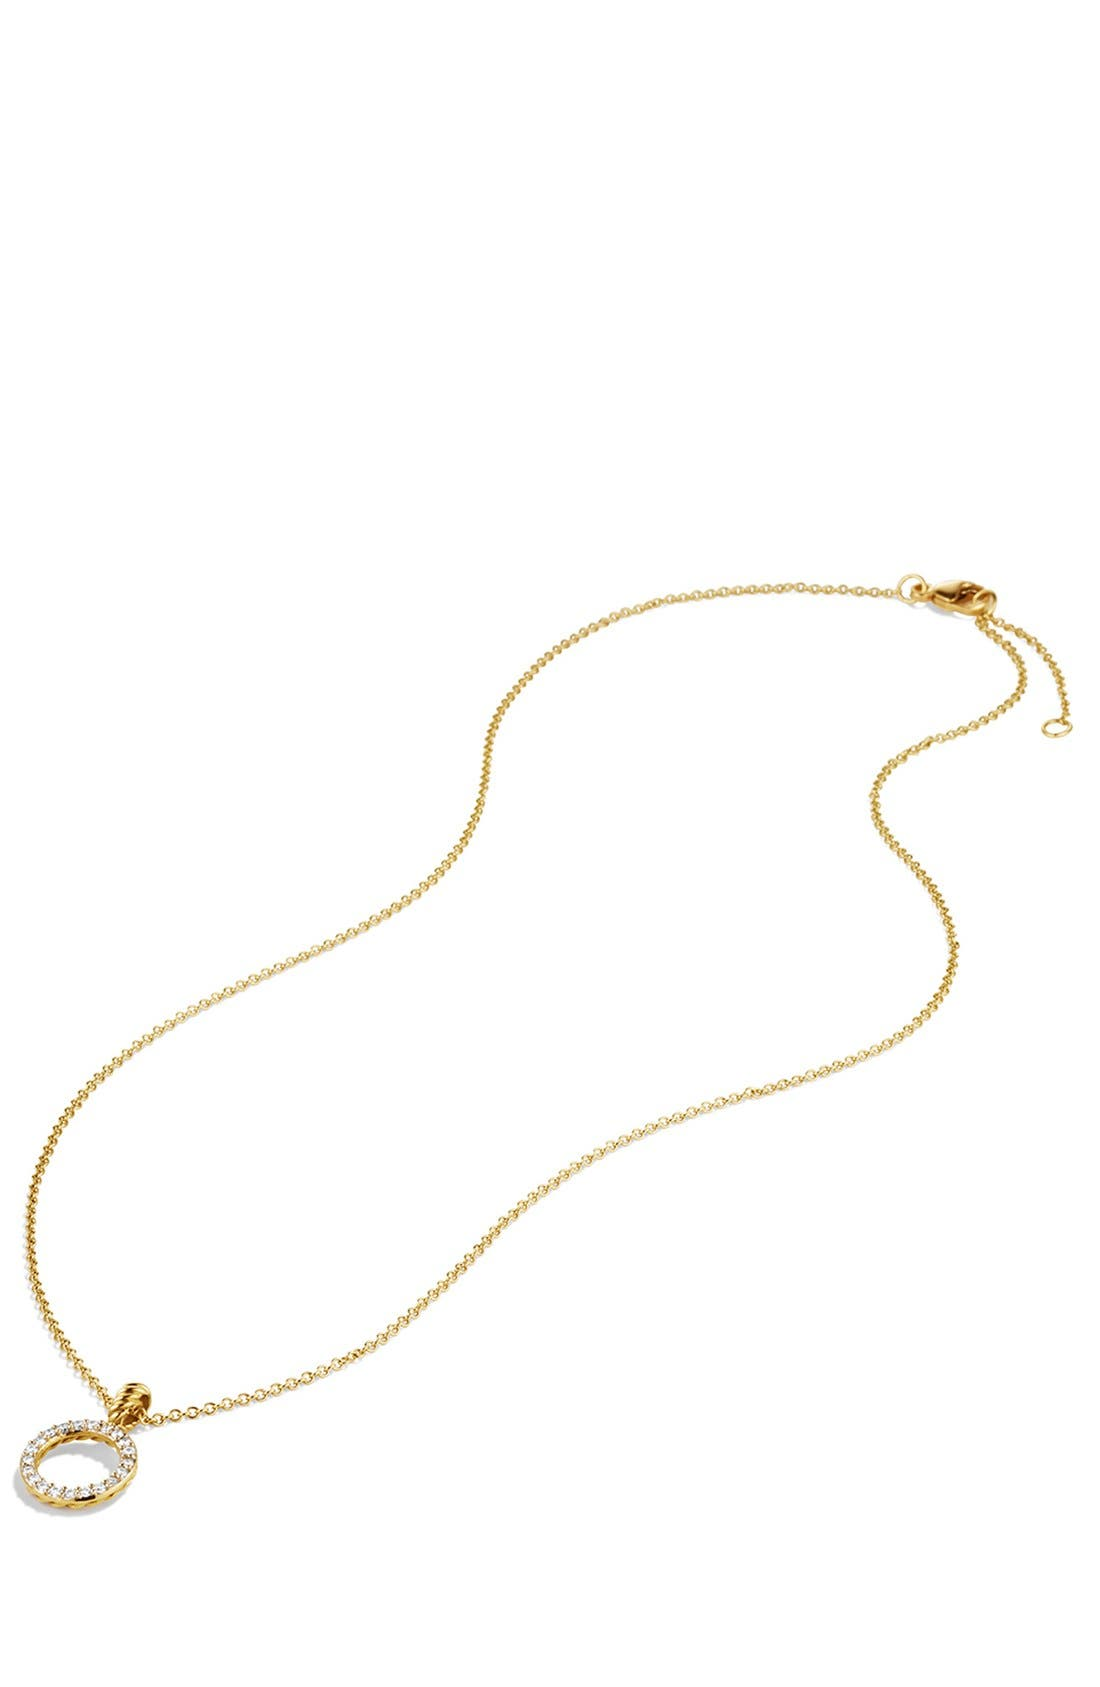 Alternate Image 3  - David Yurman 'Cable Collectibles' Circle Pendant with Diamonds in Gold on Chain